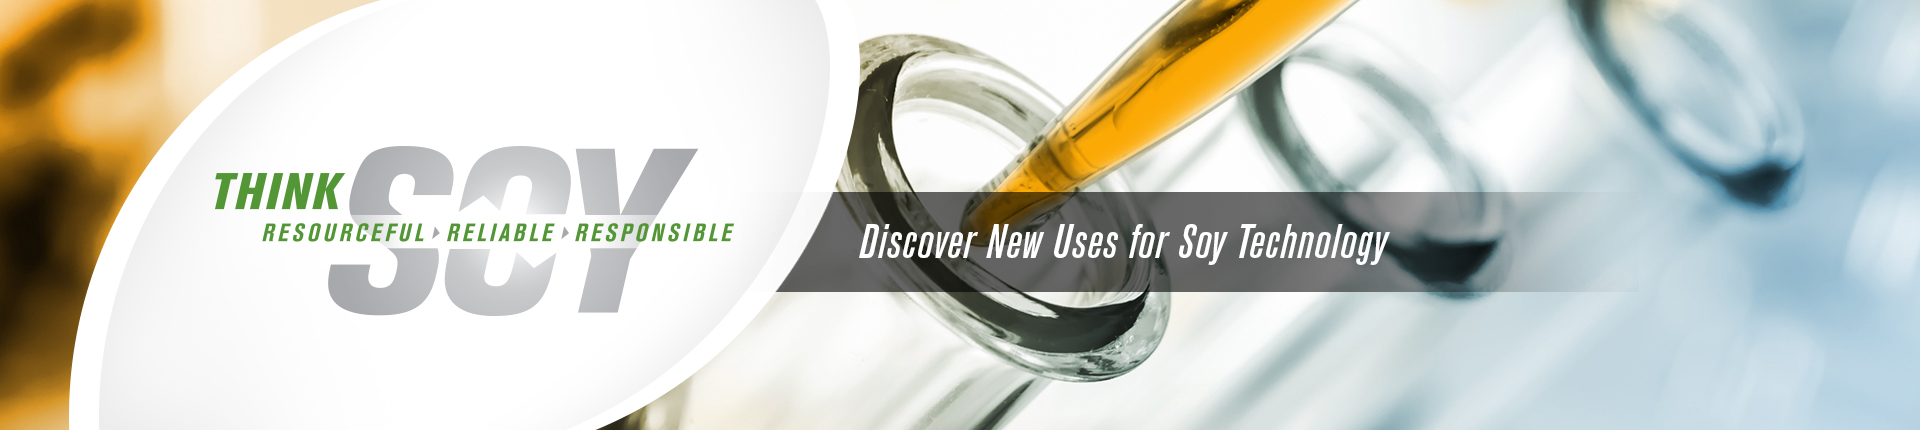 lubricants soy new uses